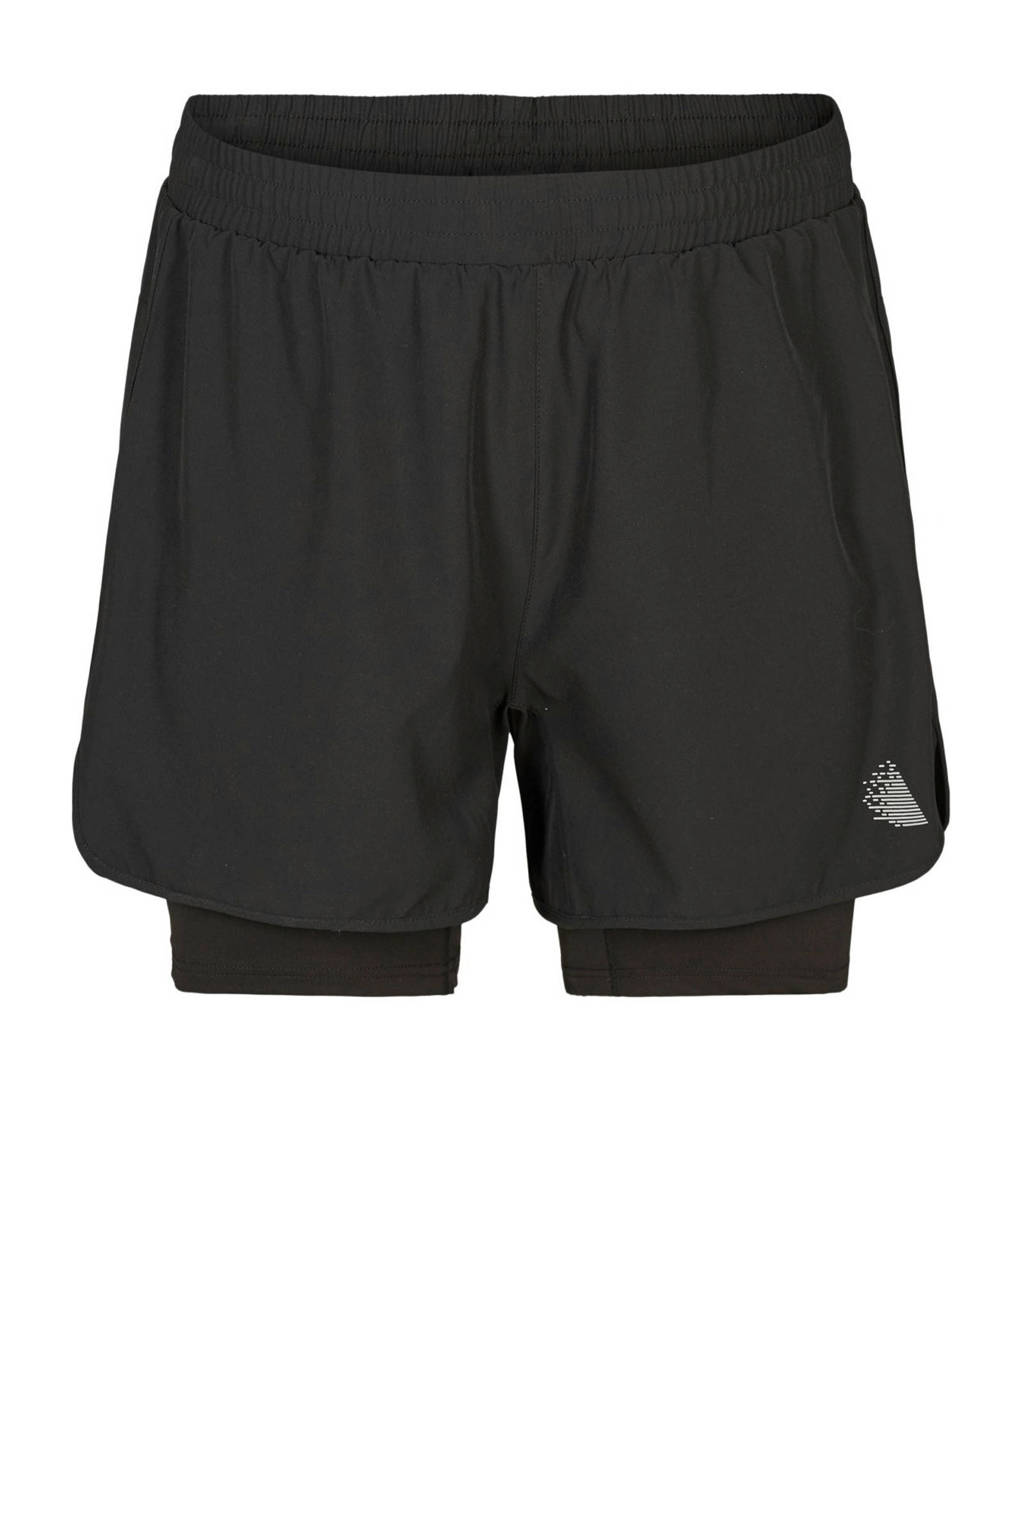 ACTIVE By Zizzi Plus Size 2-in-1 sportshort zwart, Zwart